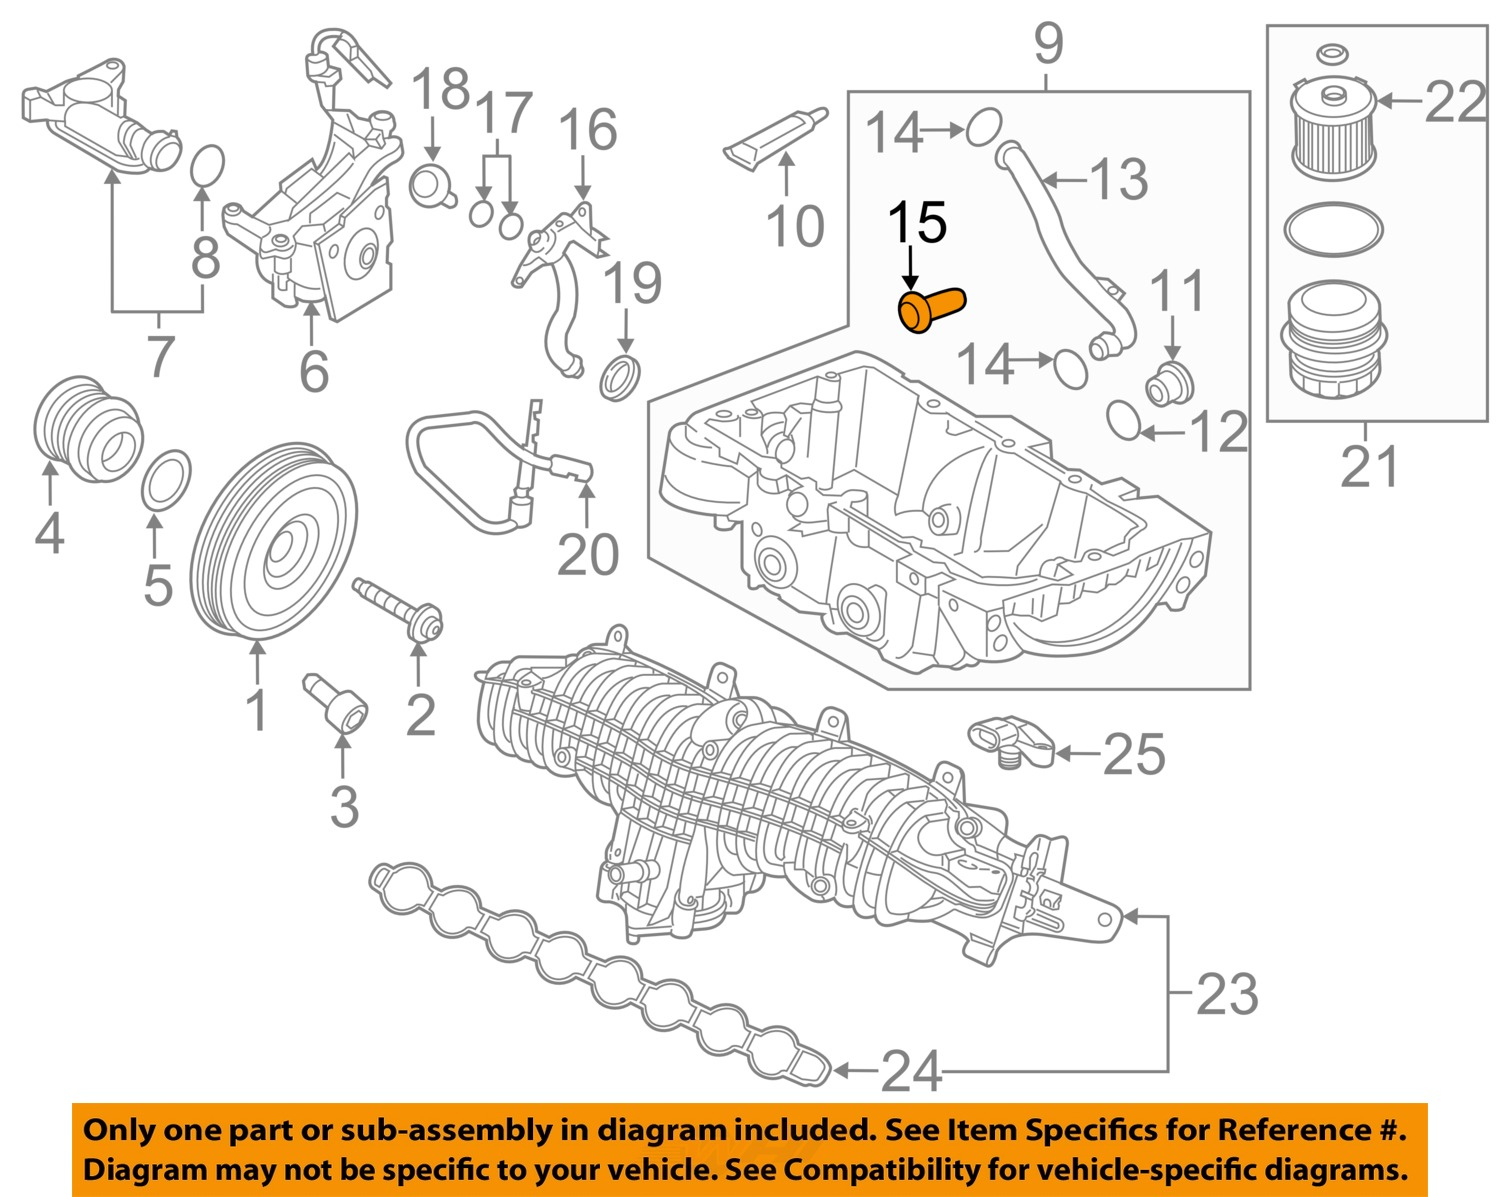 Volvo 850 Radio Wiring Harness Diagram Reveolution Of 1991 940 Engine Spa Air Dpdt Switch Turbo Wagon 1995